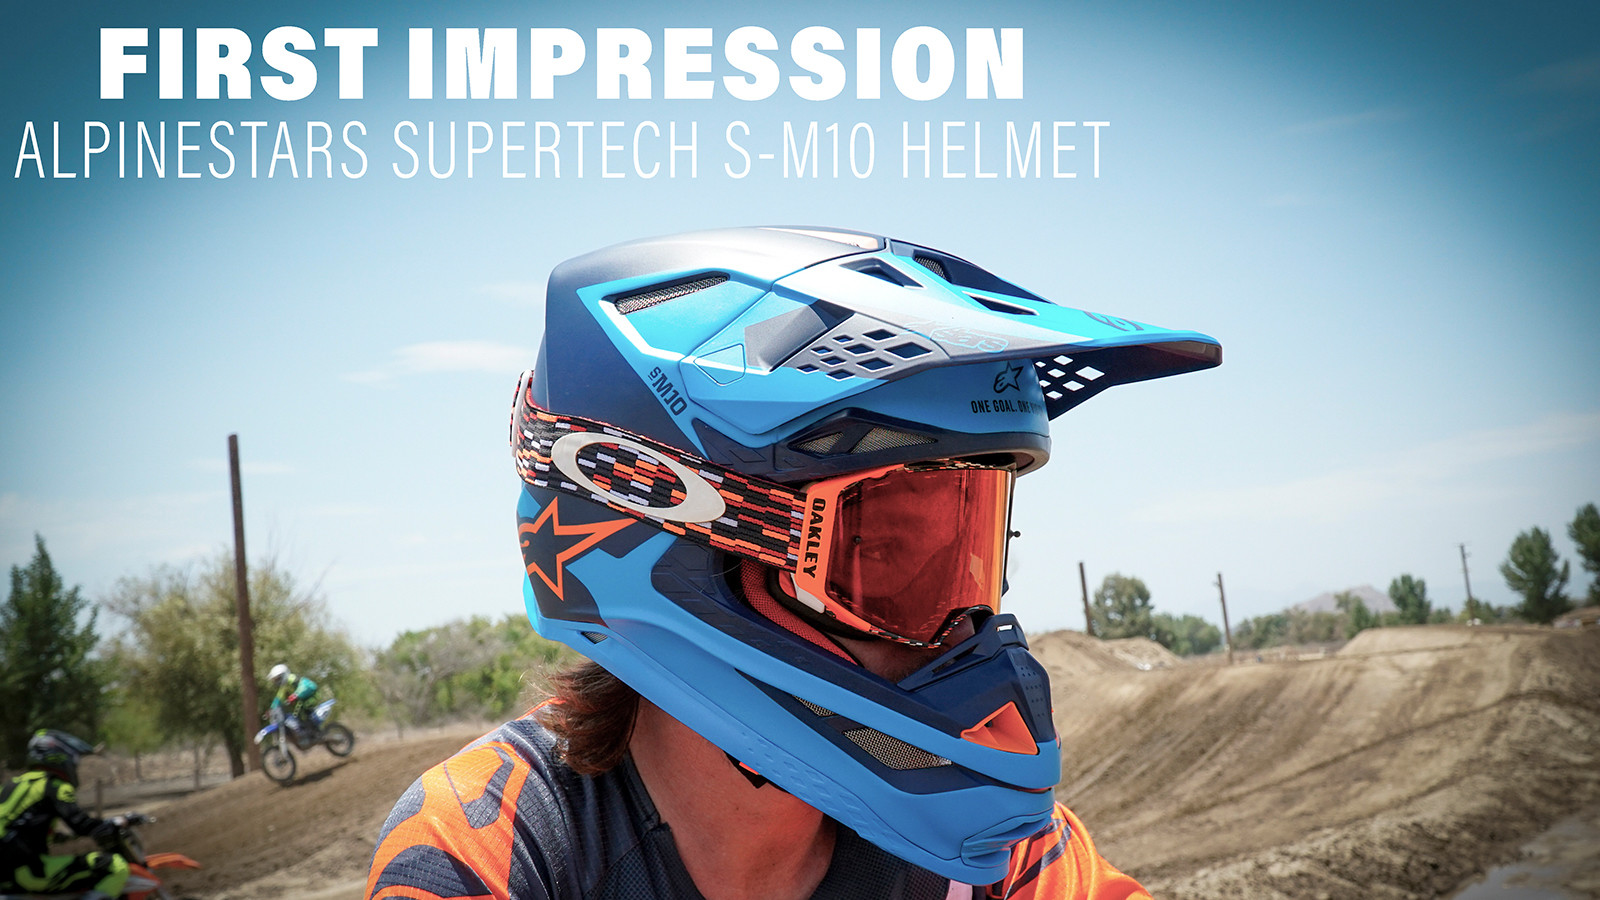 First Impression: Alpinestars Supertech S-M10 Helmet